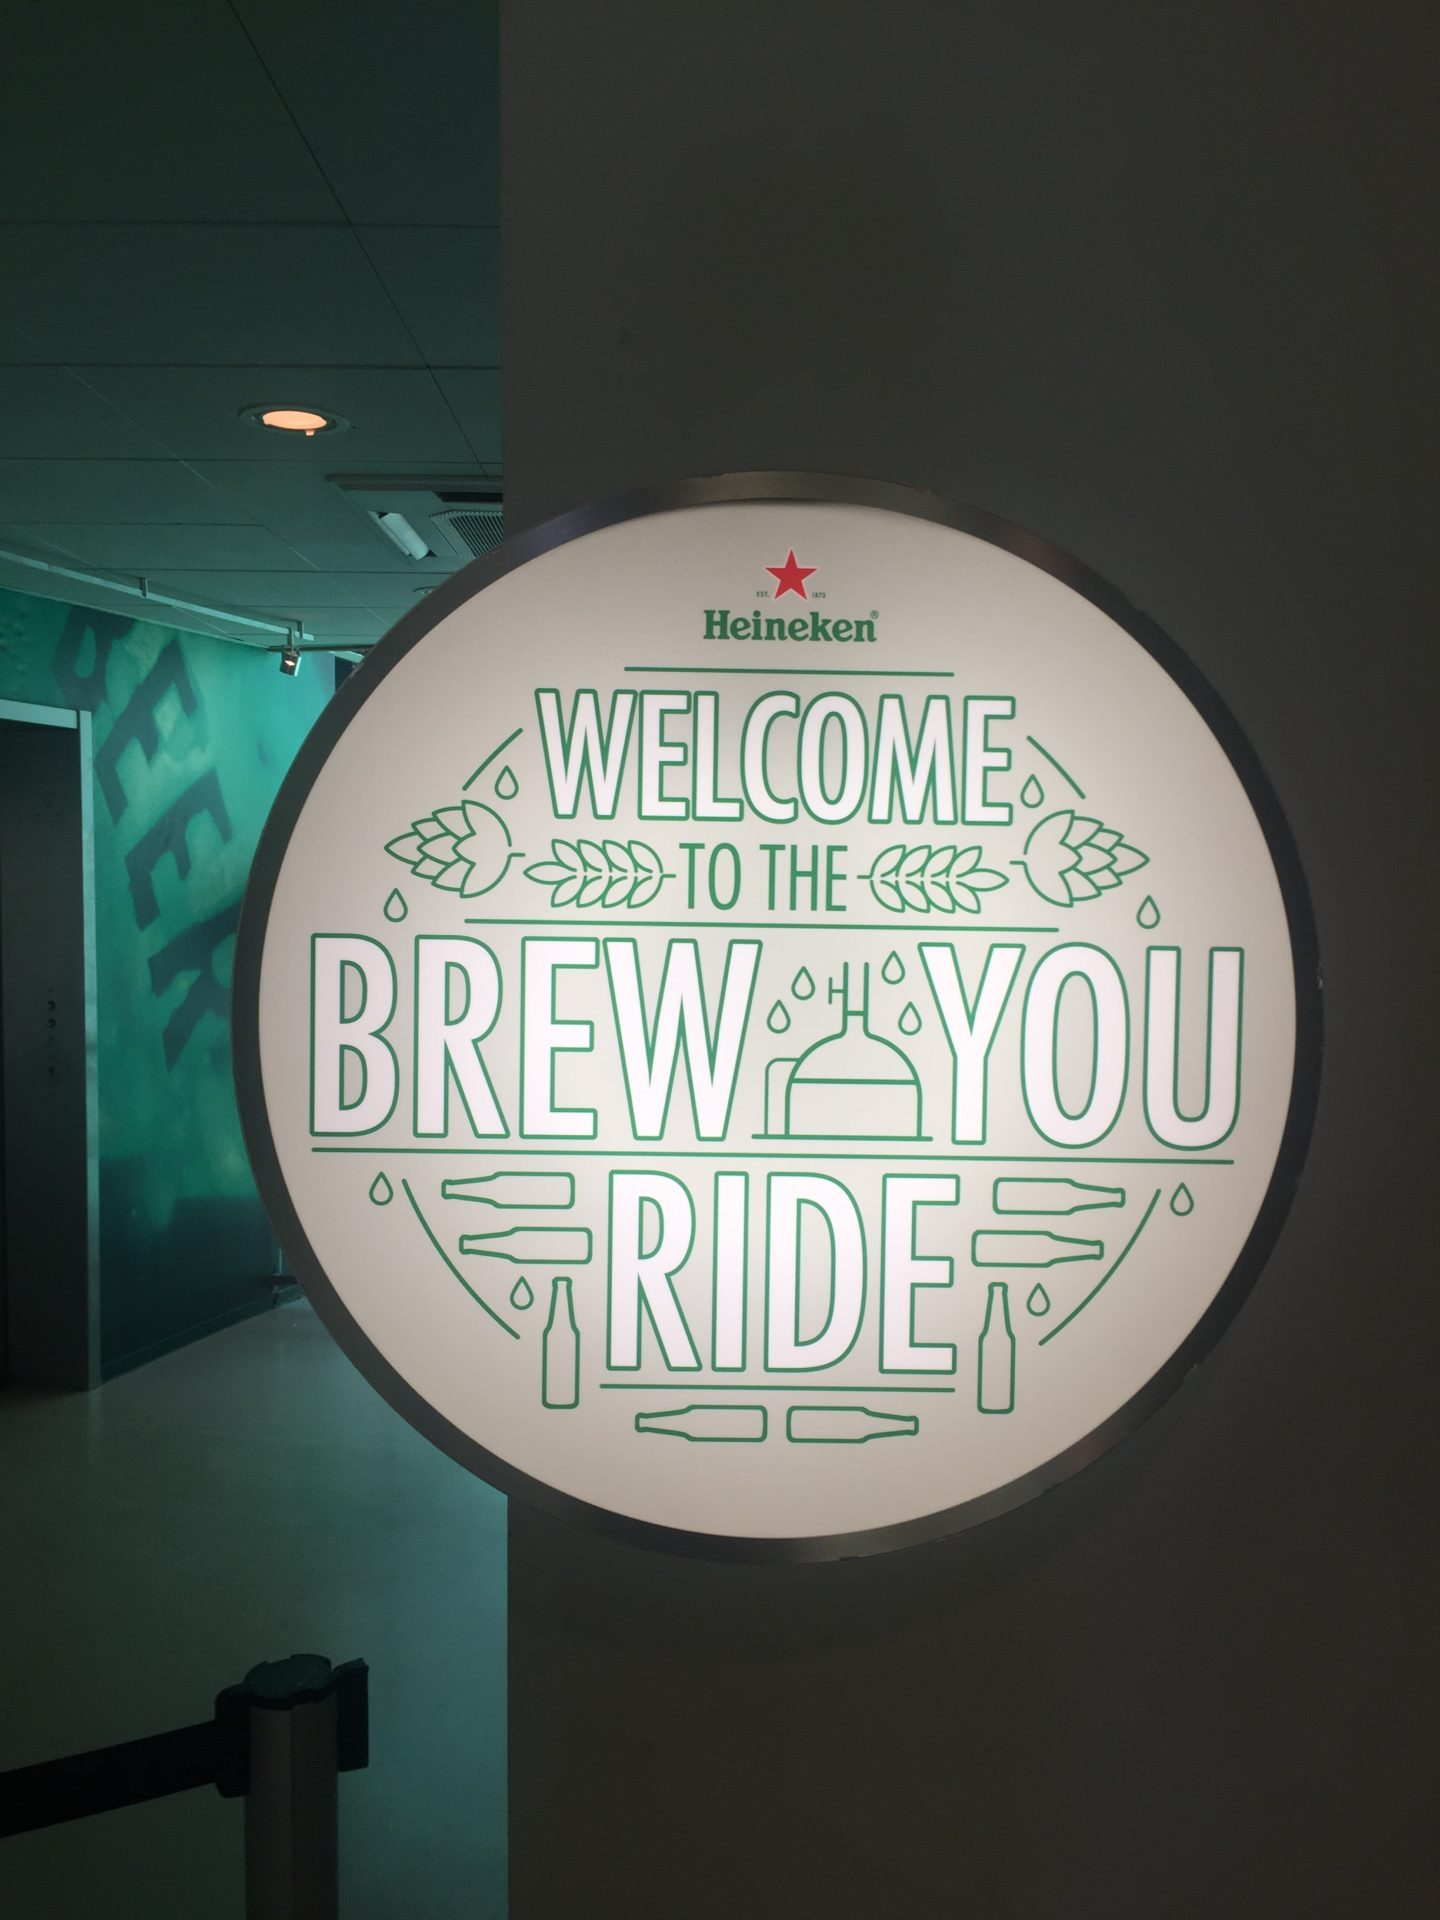 The Heineken Brew You ride's signs